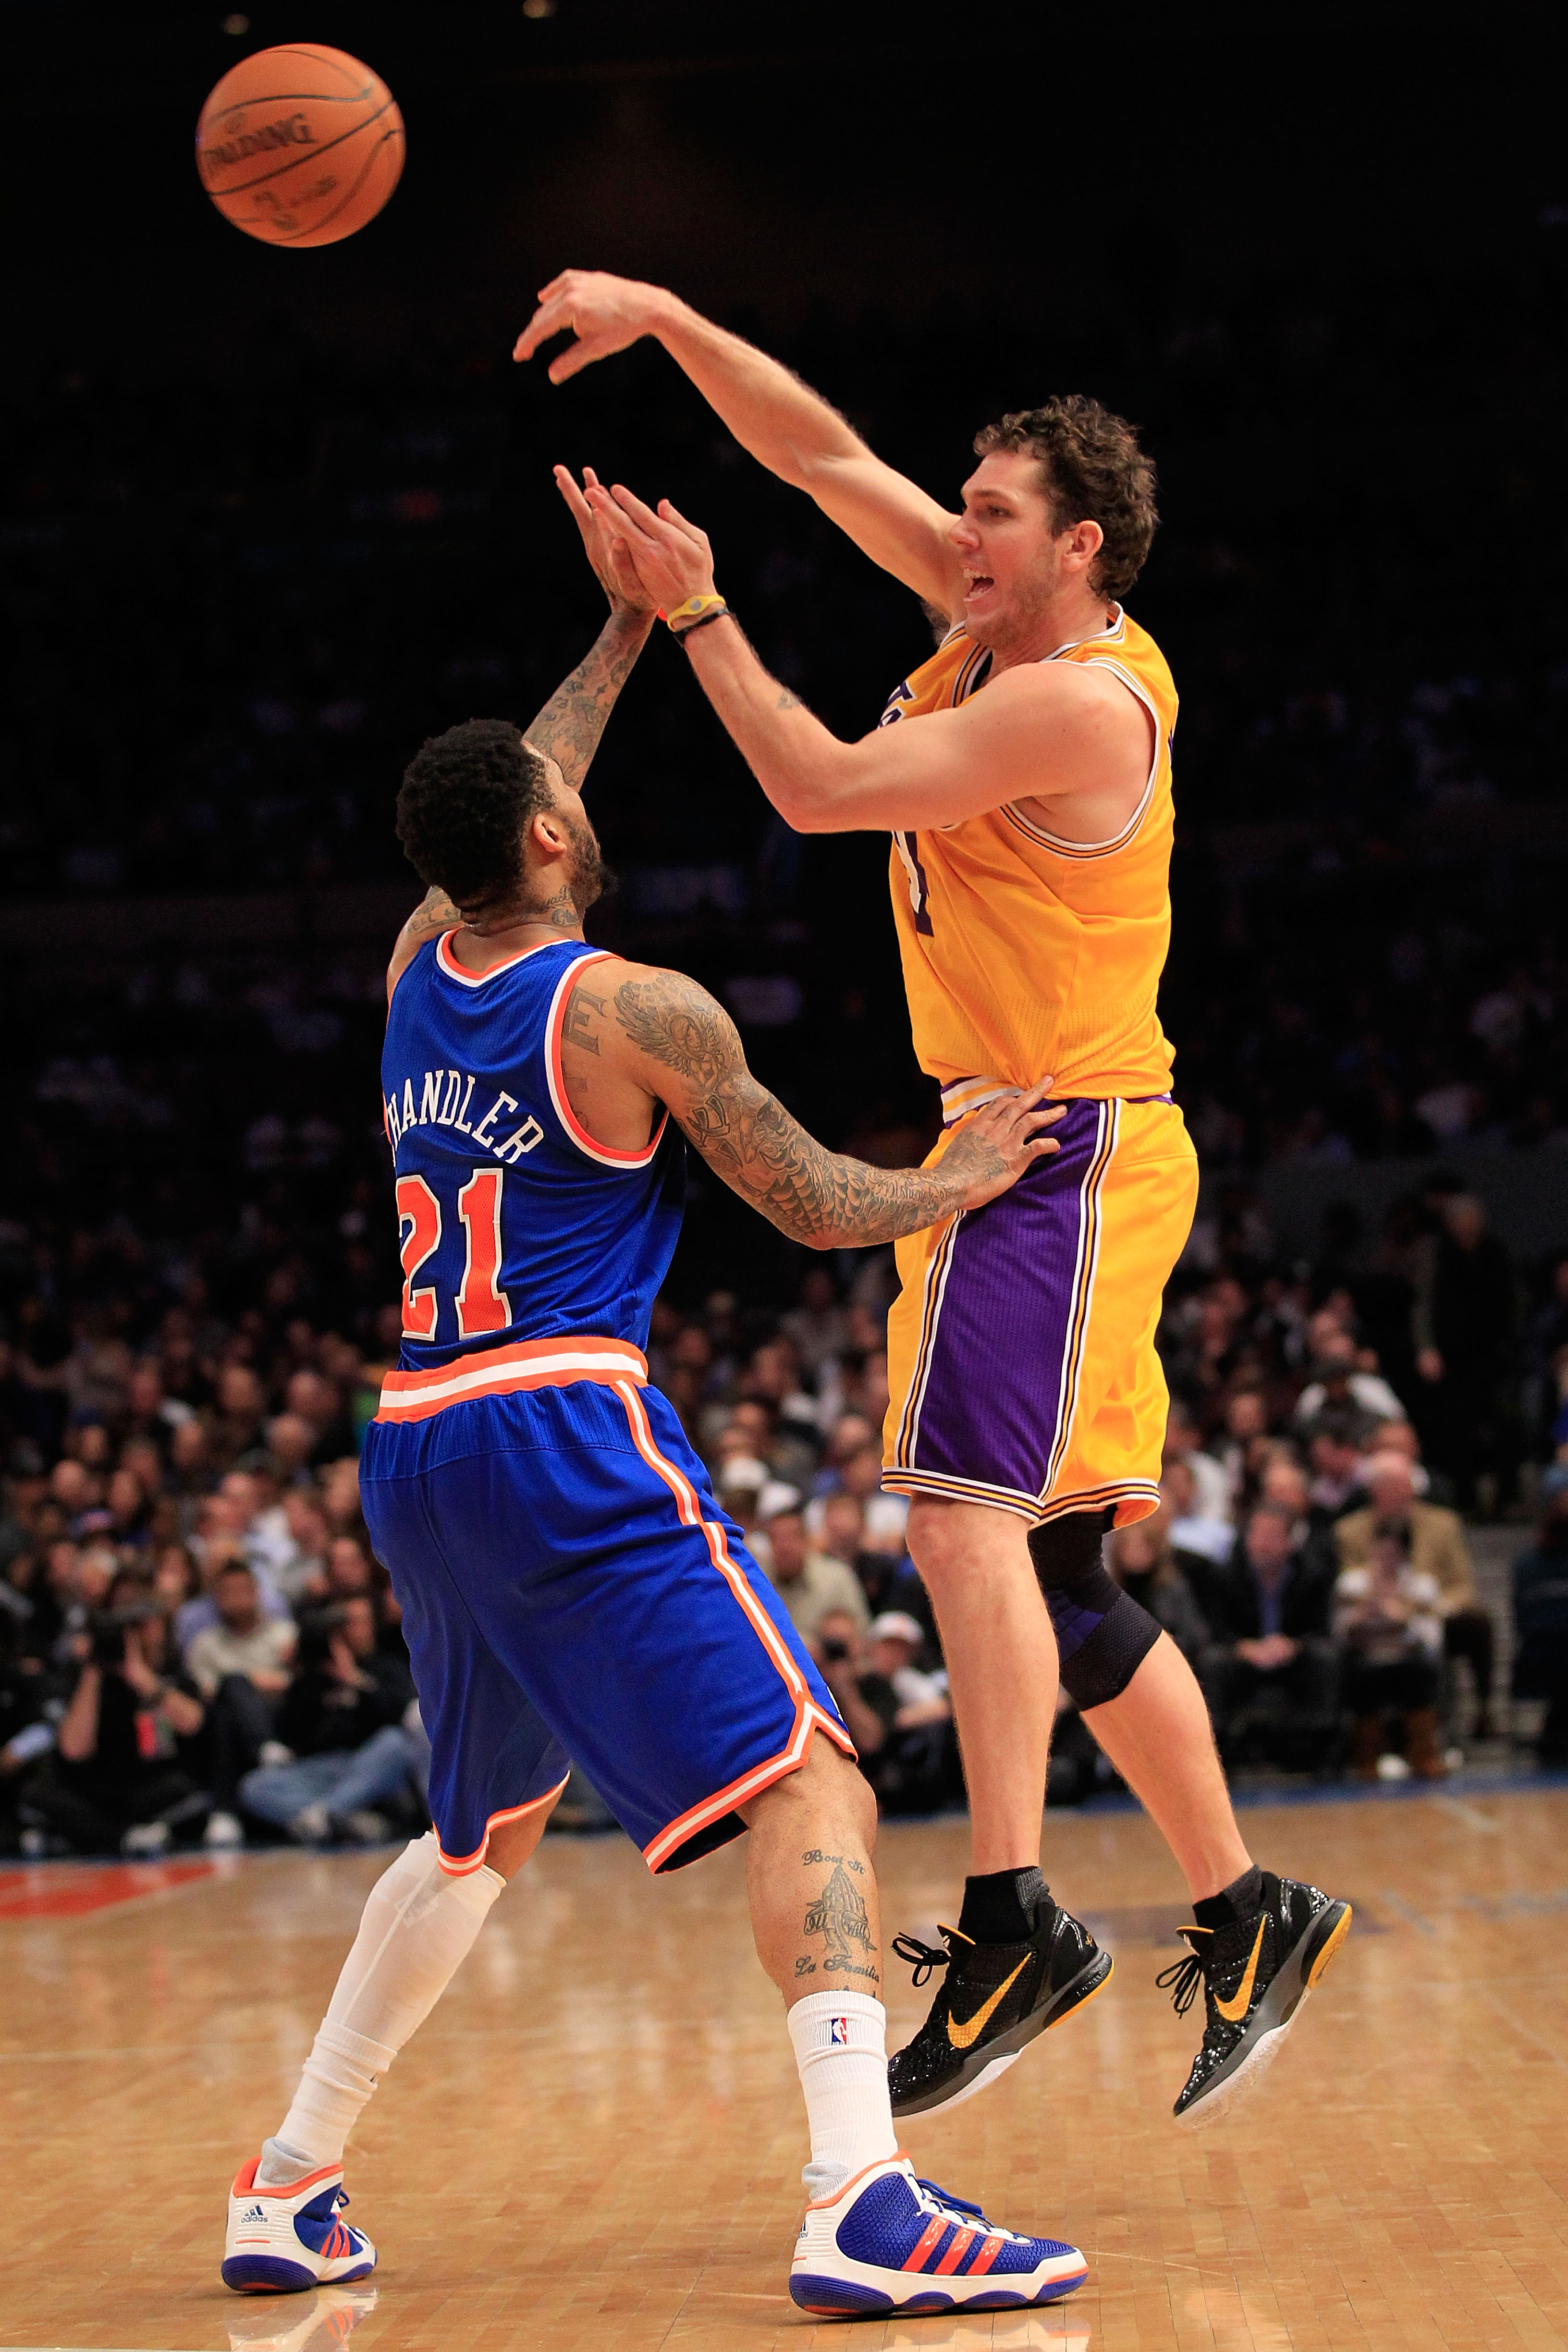 NEW YORK, NY - FEBRUARY 11:  Luke Walton #4  of the Los Angeles Lakers passes the ball over Wilson Chandler #21 of the New York Knicks at Madison Square Garden on February 11, 2011 in New York City. NOTE TO USER: User expressly acknowledges and agrees tha